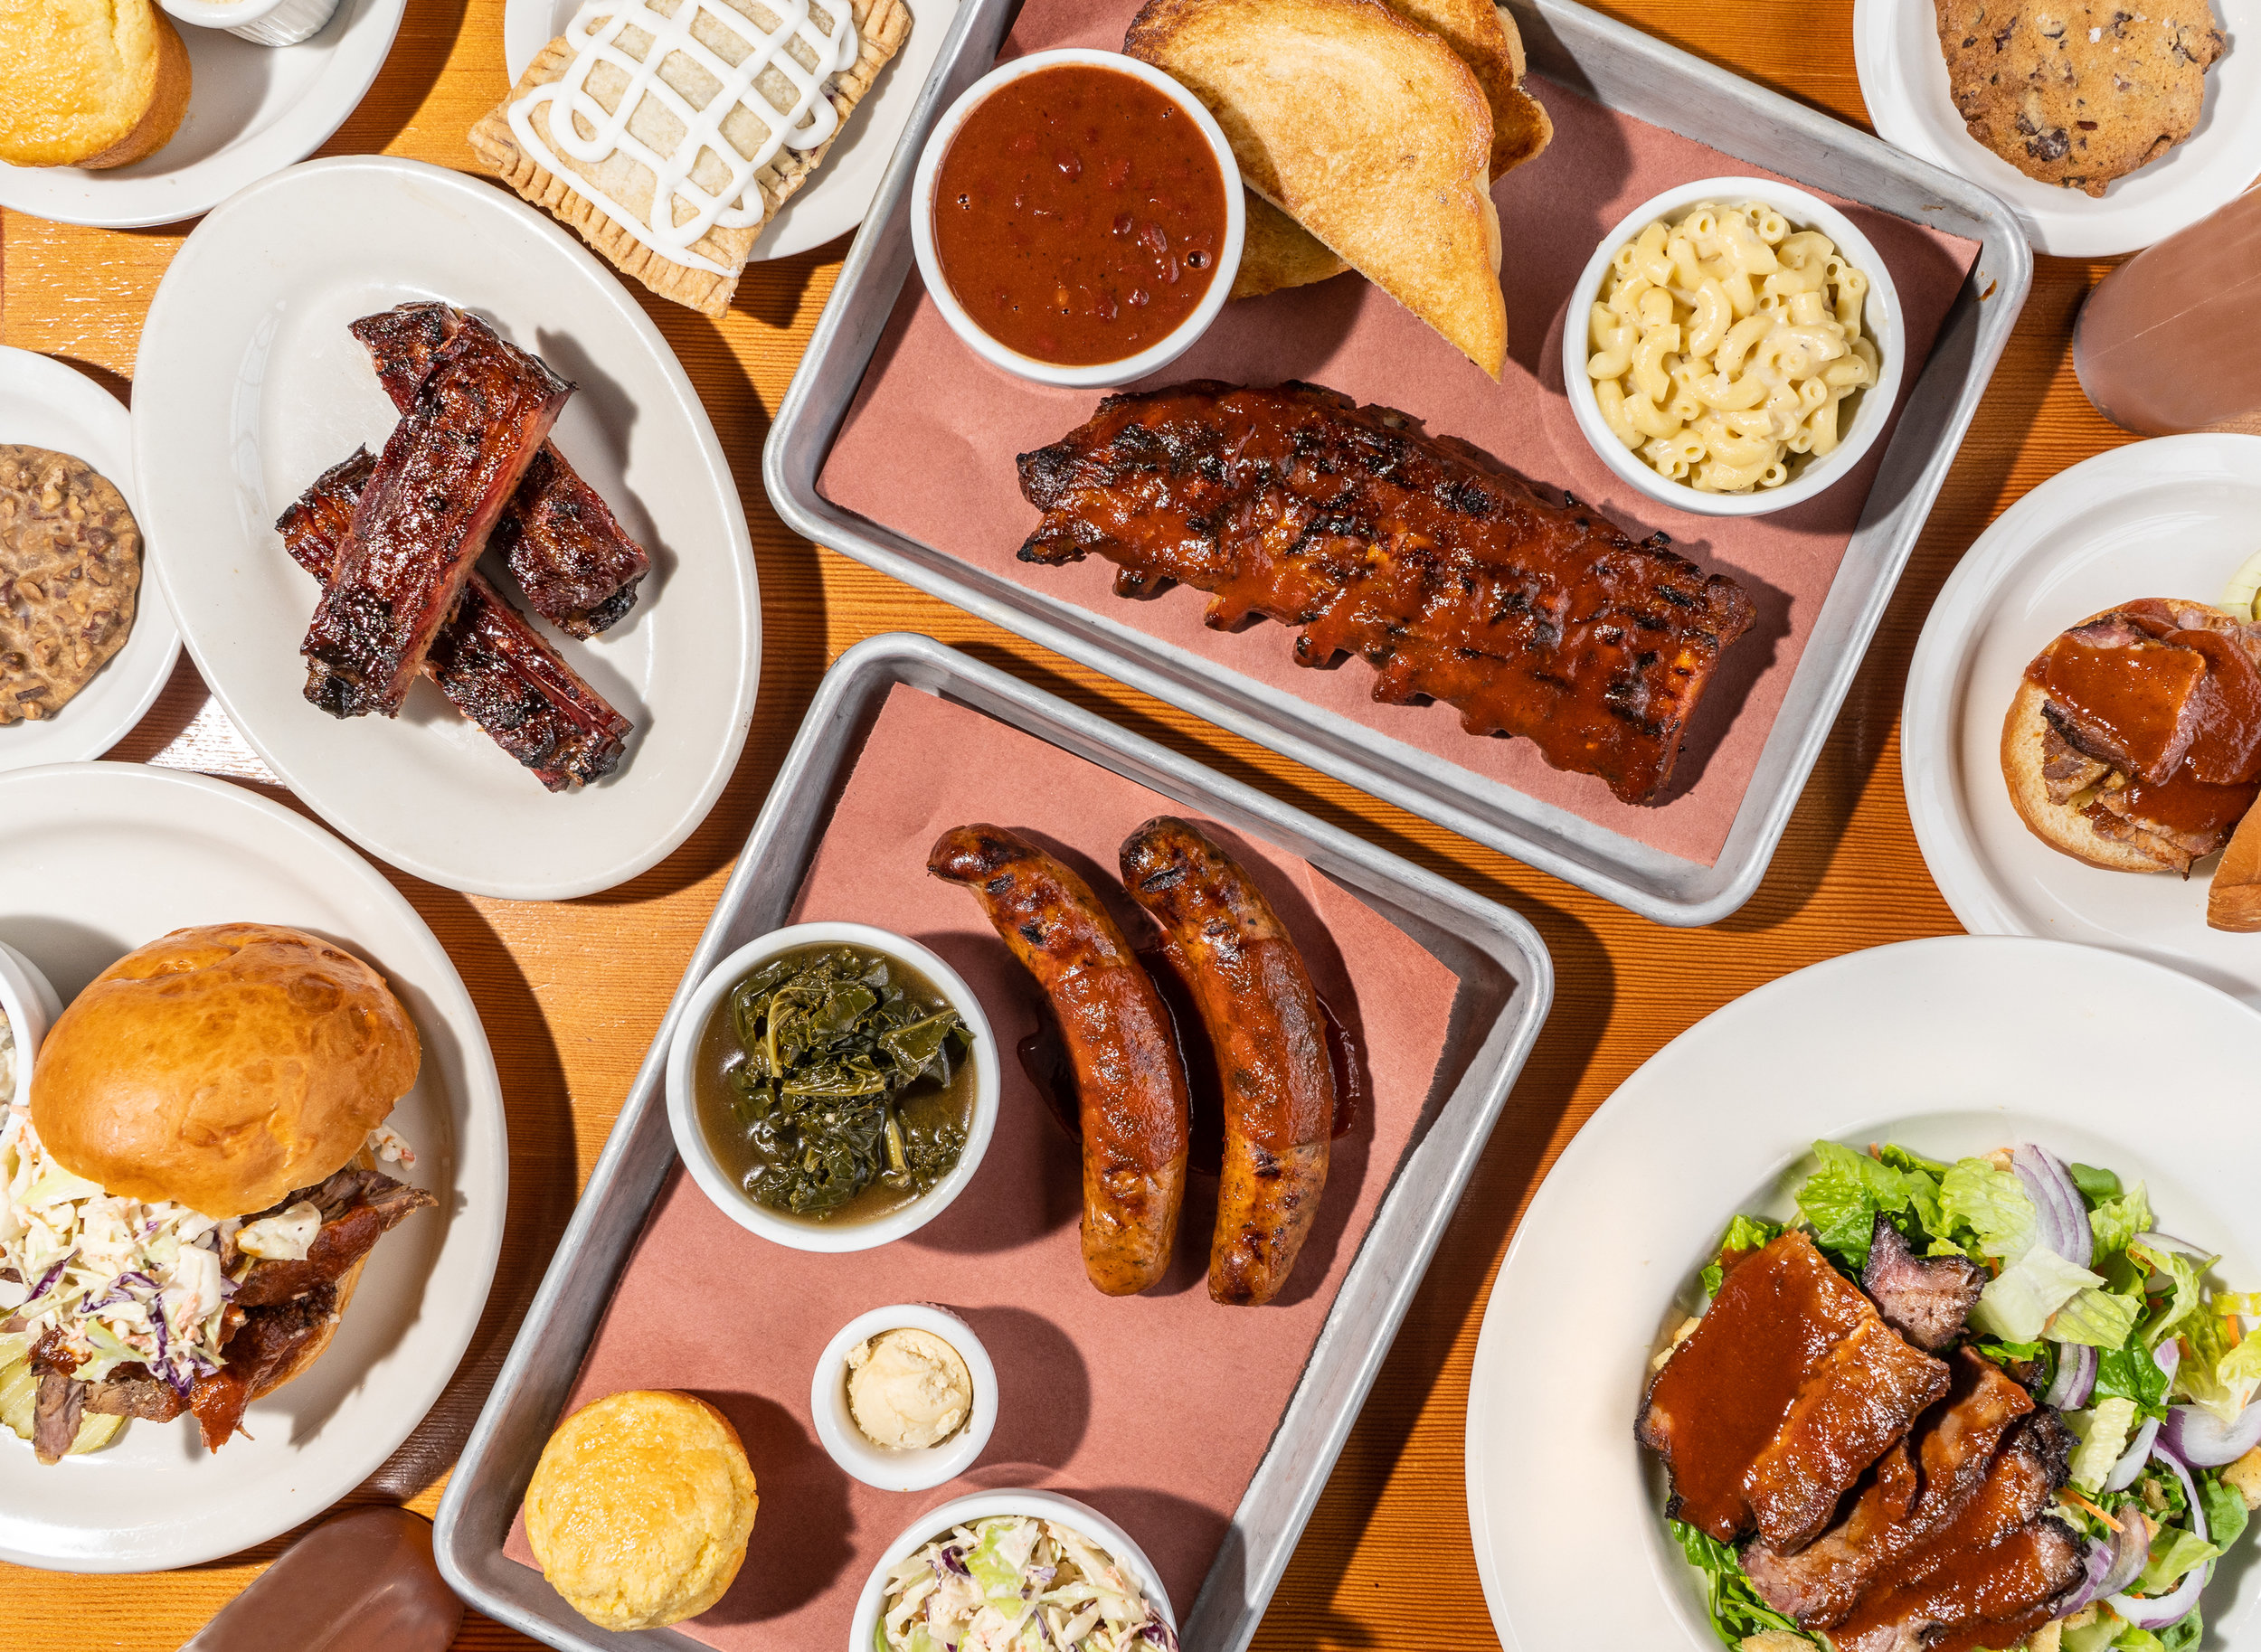 barbecue bbq food photographer russel st bbq-2.jpg